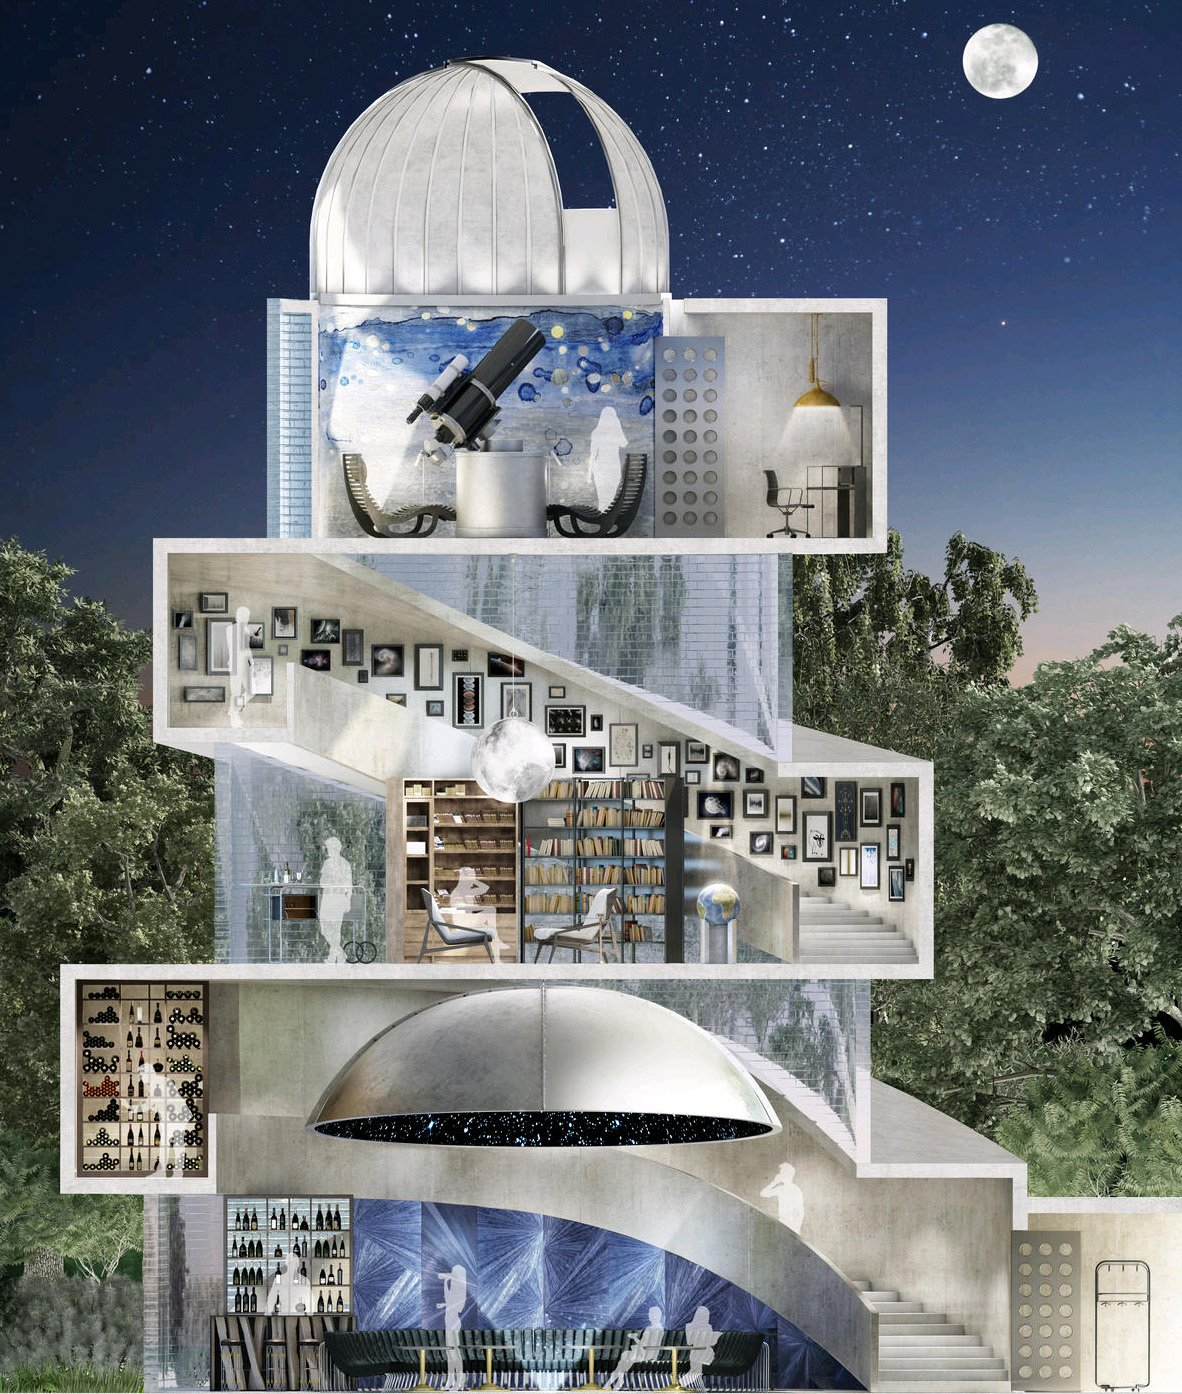 The Three Level Dome Structured Observatory Features A Home Cinema, A  Planetarium, A Karaoke Bar, A Library And A Lounge To Enjoy Cigars With The  ...